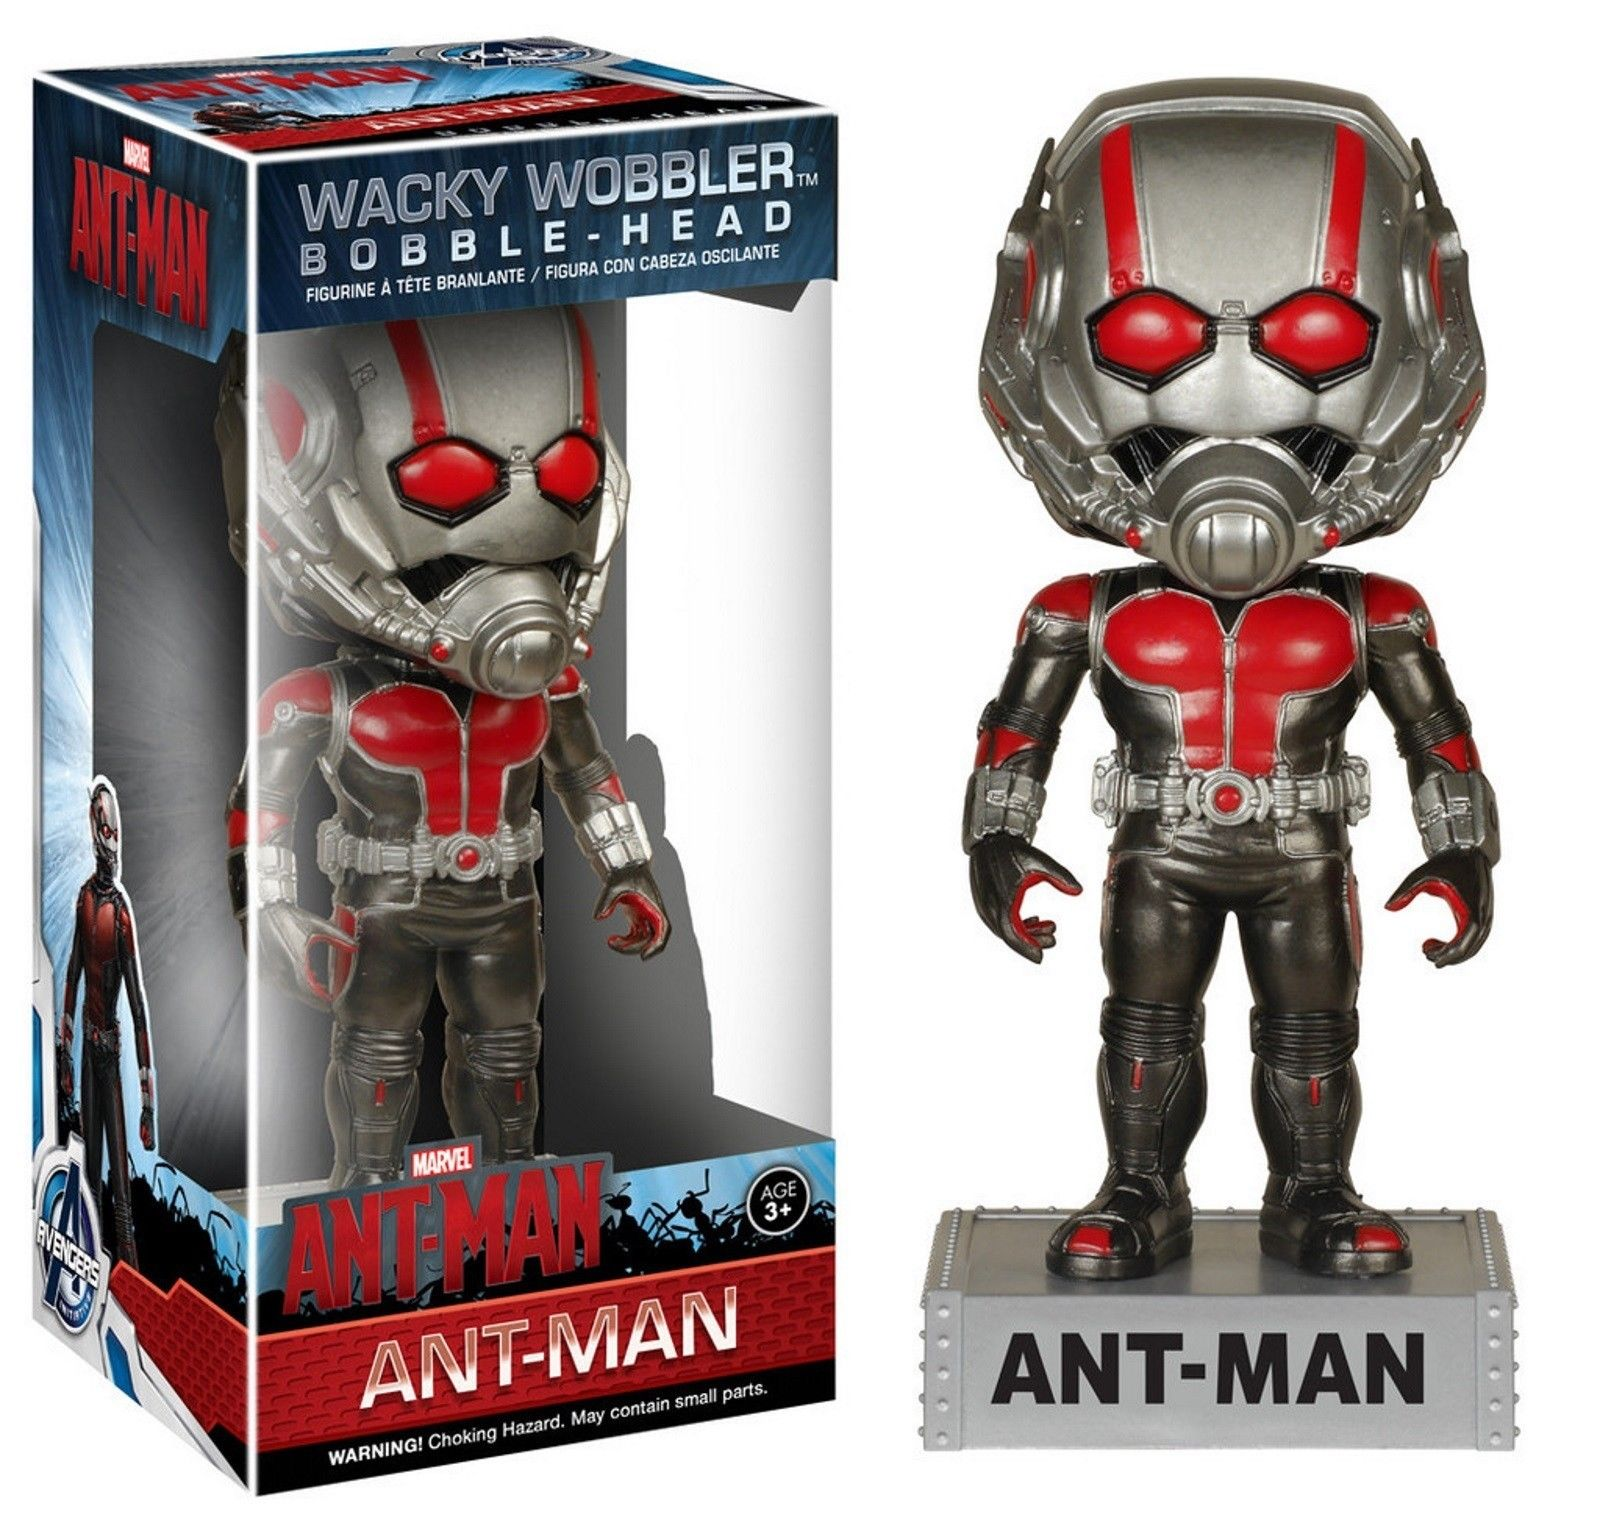 Marvel Avengers Initiative Ant-Man Wacky Wobbler Bobble-head